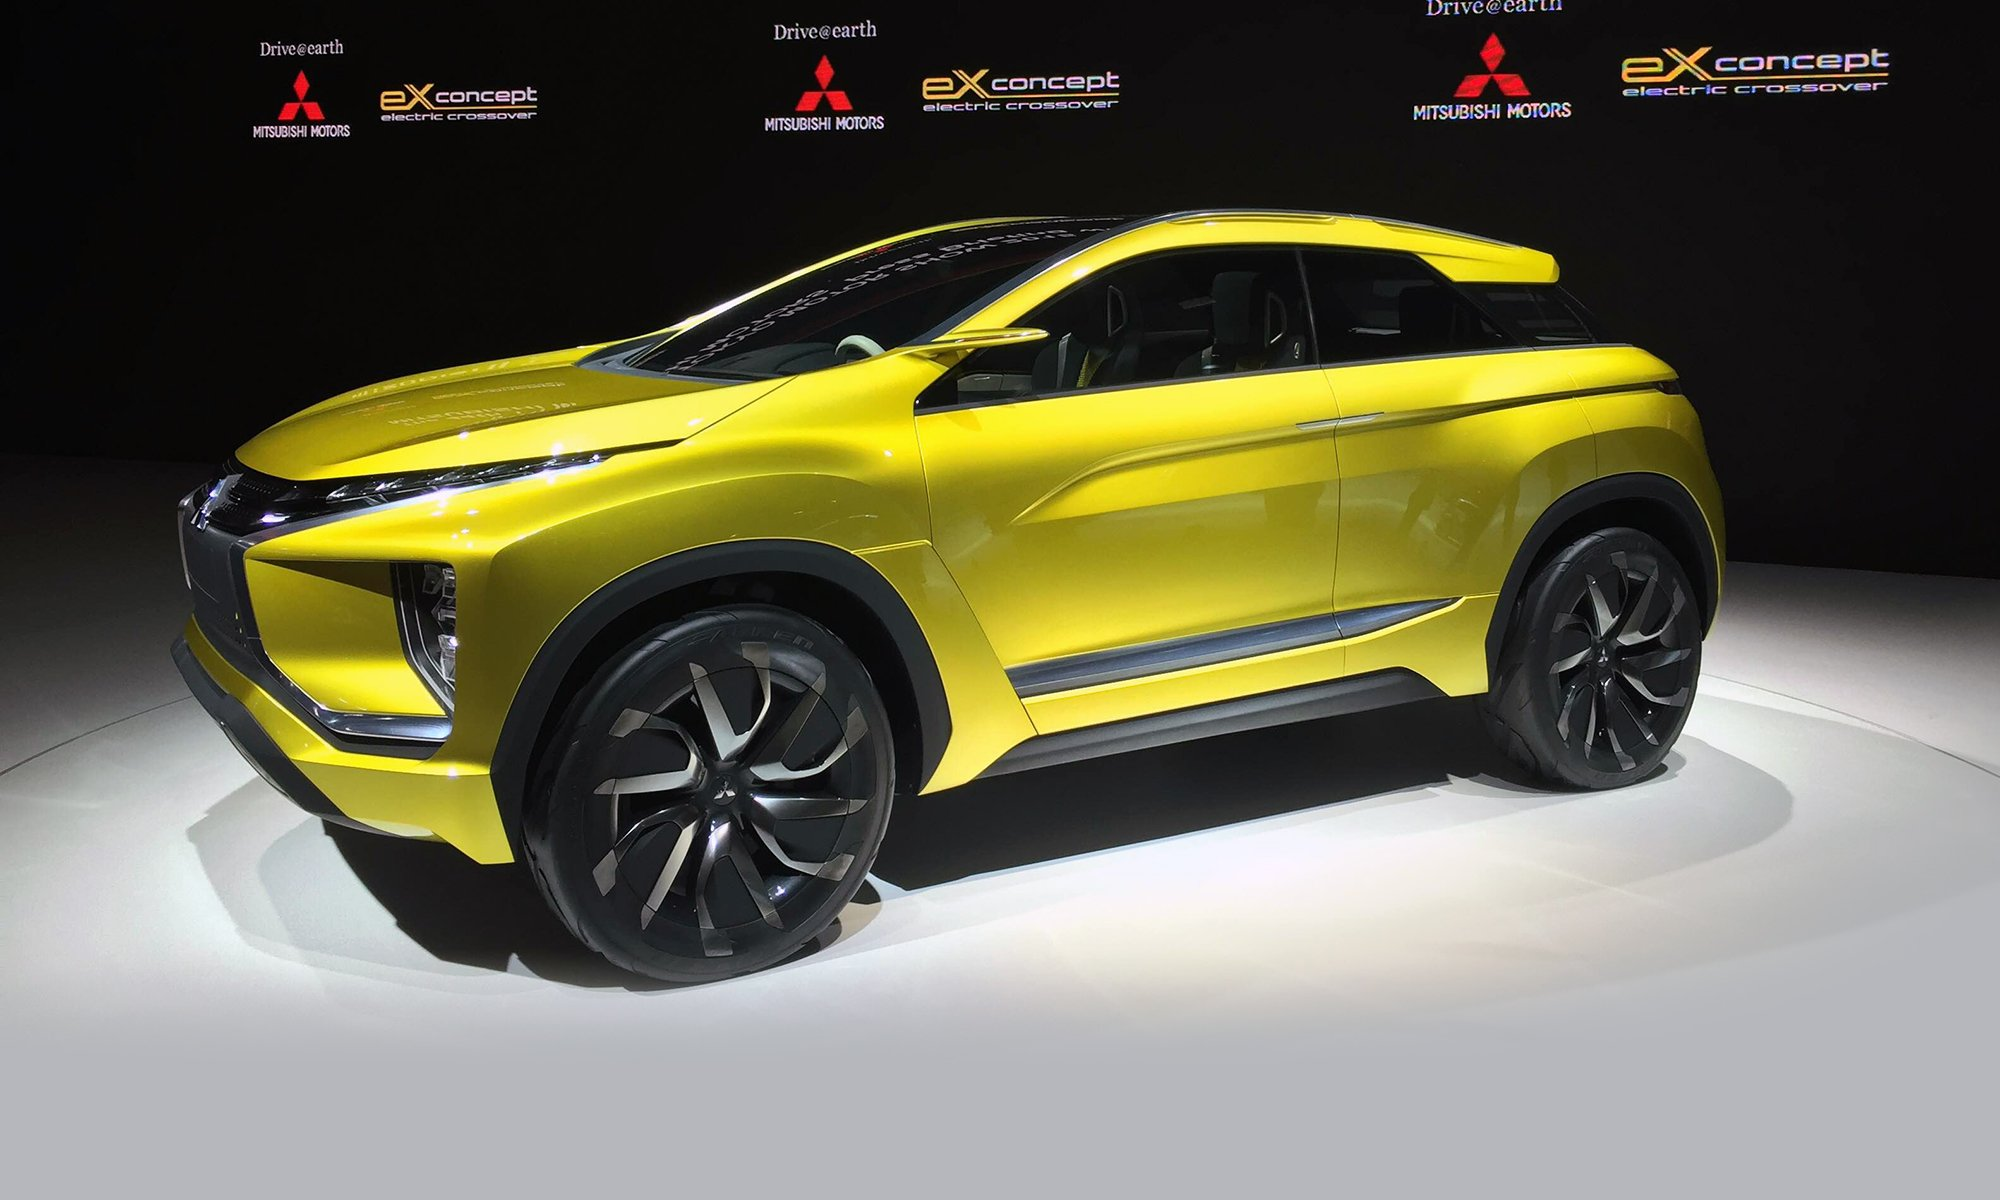 Mitsubishi confirms brand-new premium SUV model line for ...